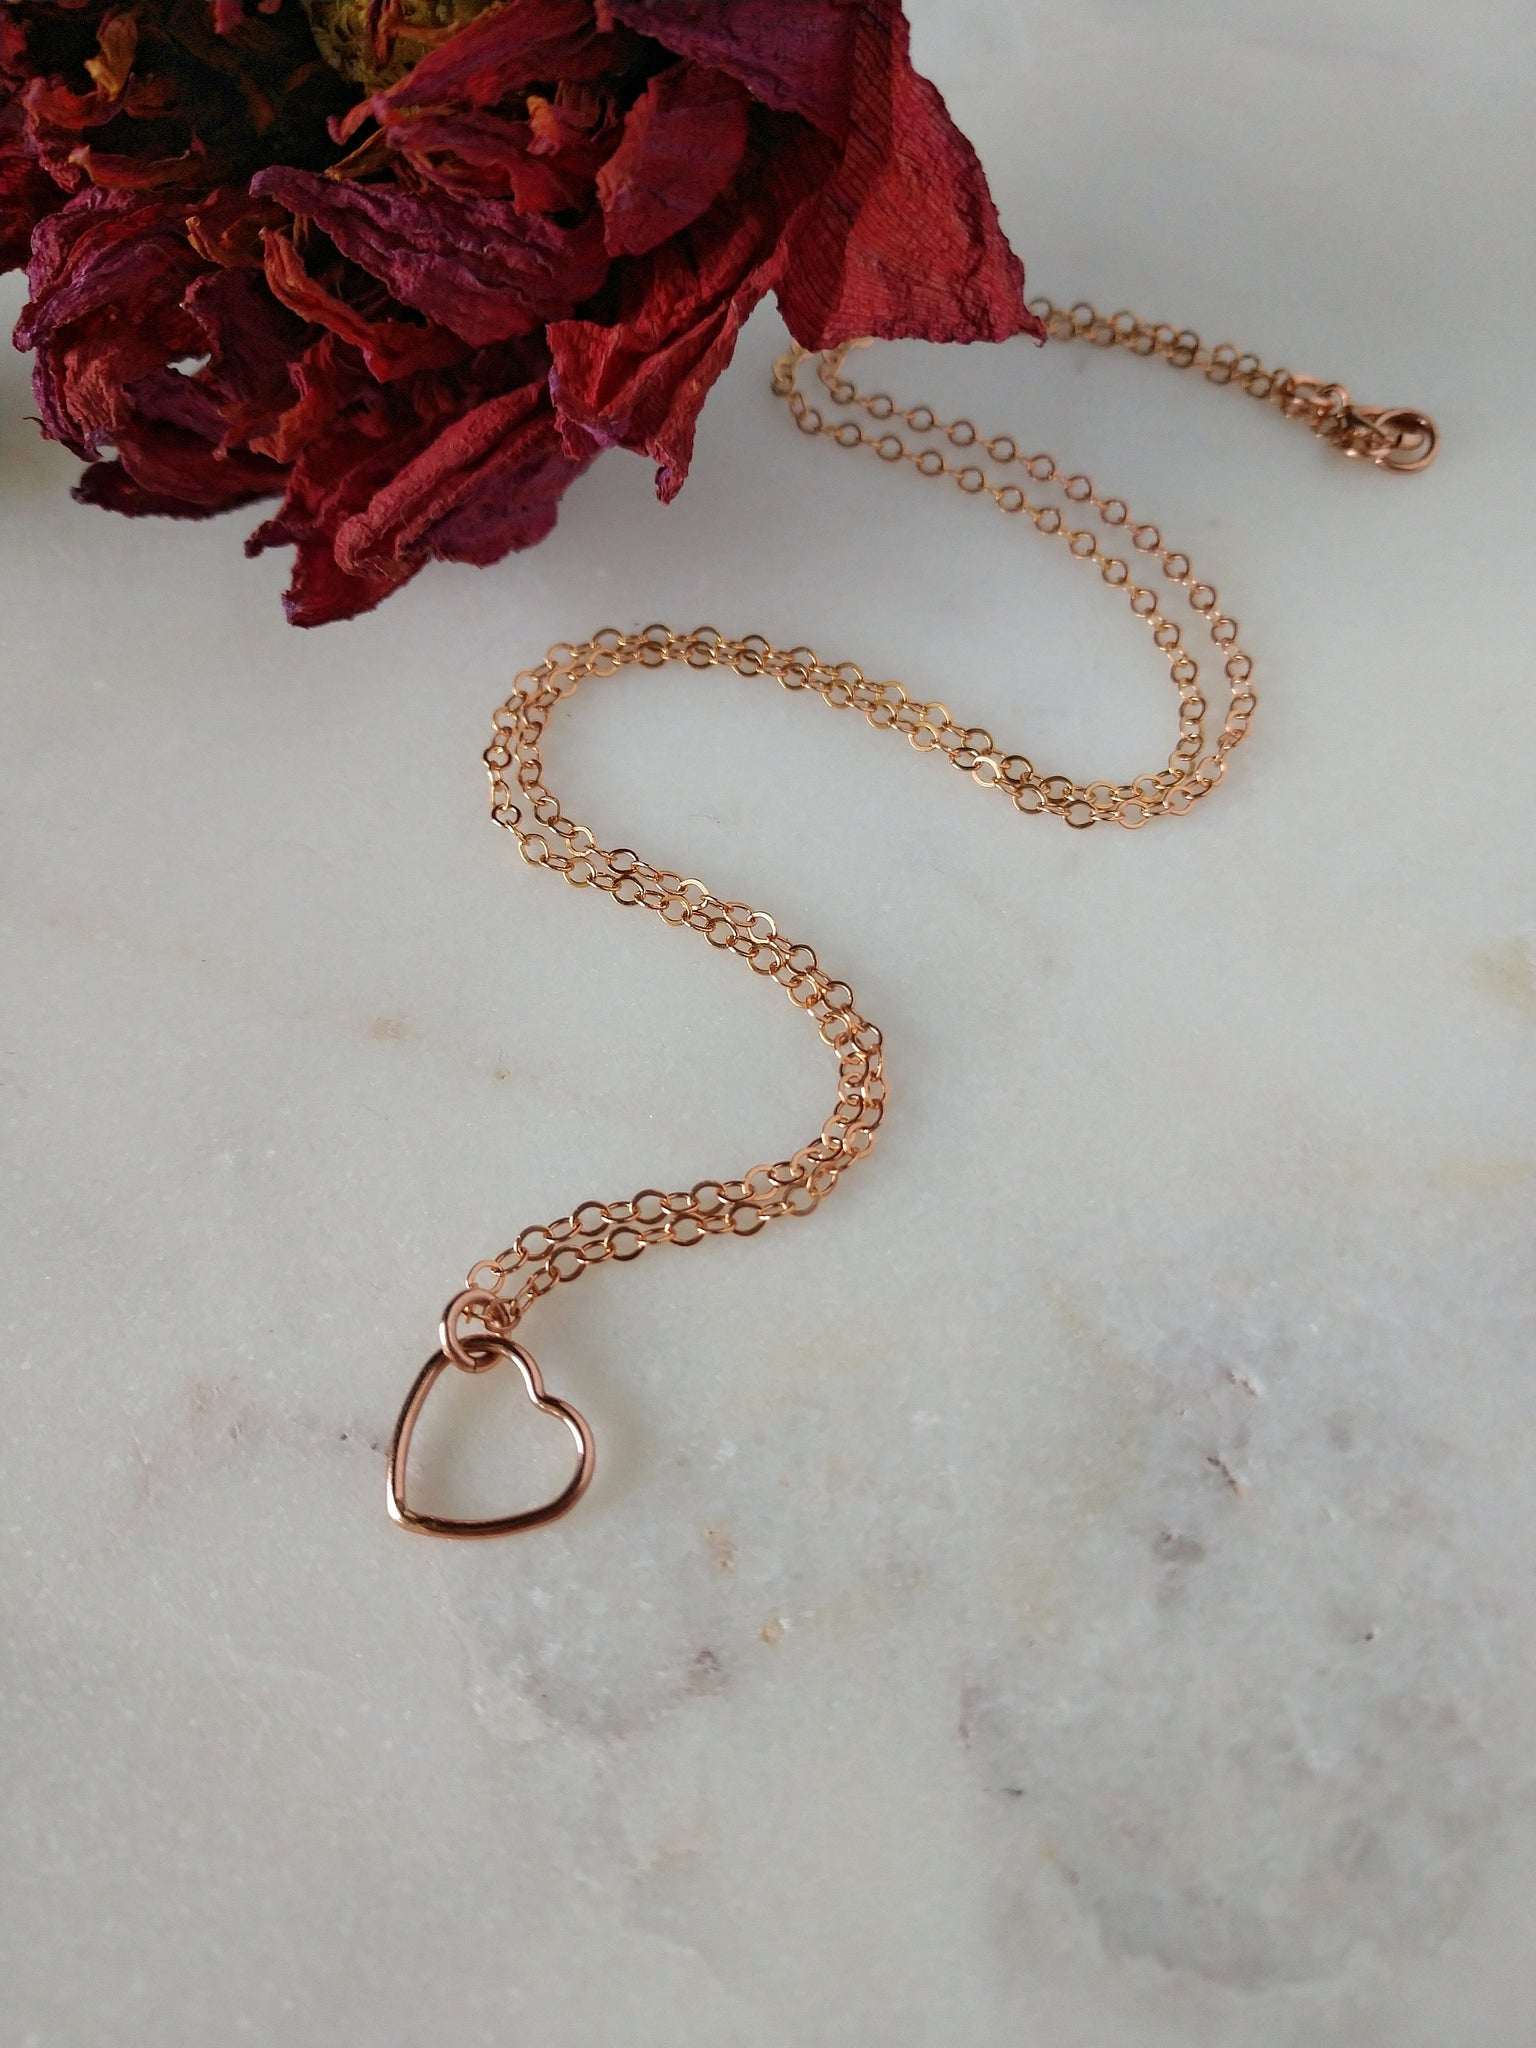 rose gold heart necklace | dainty | feminine | gift for daughter | rare soul accessories | handcrafted jewelry